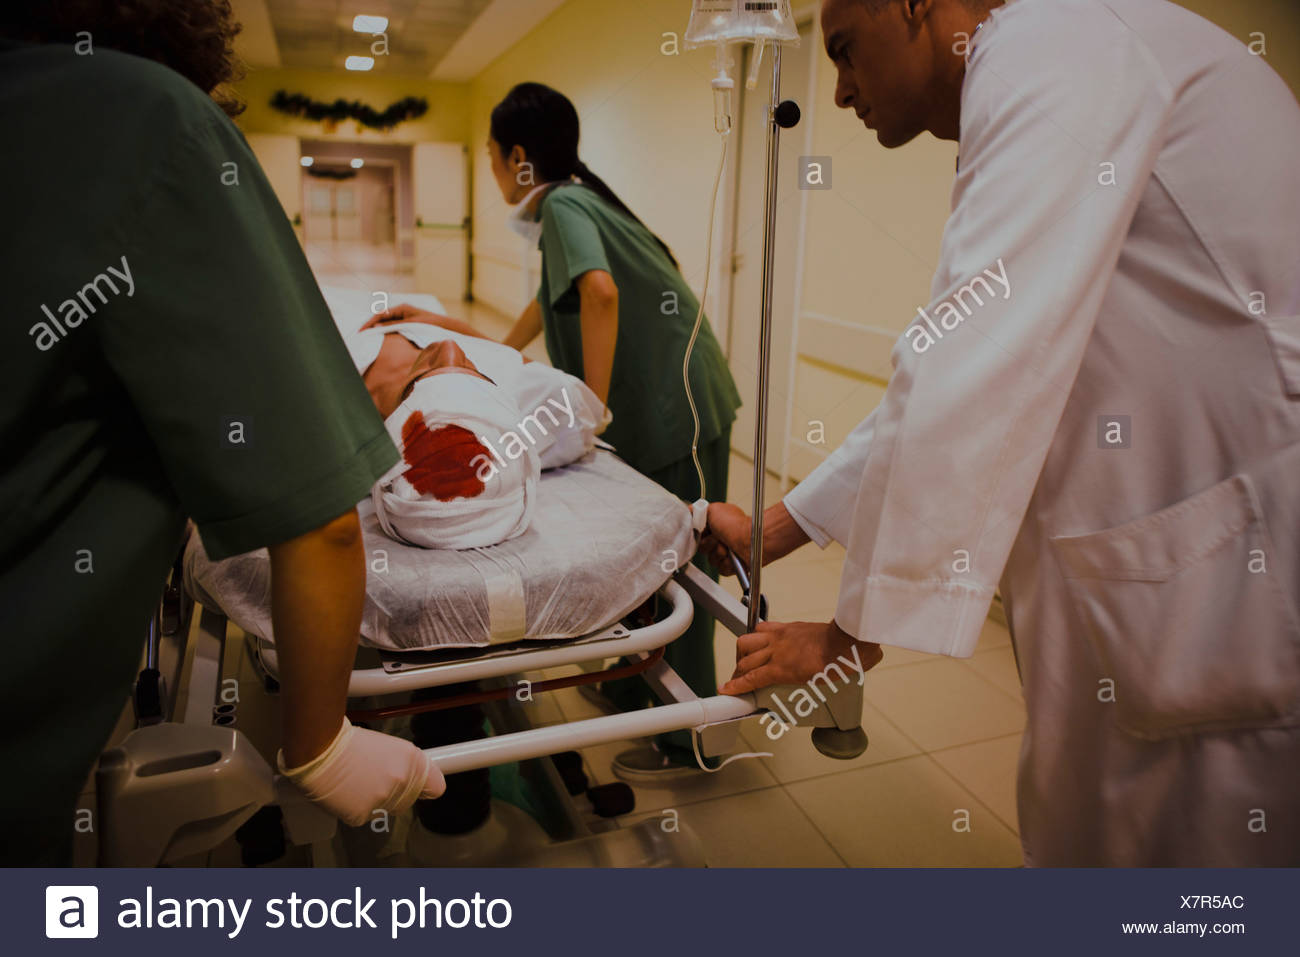 Healthcare workers transporting injured patient on gurney, cropped - Stock Image